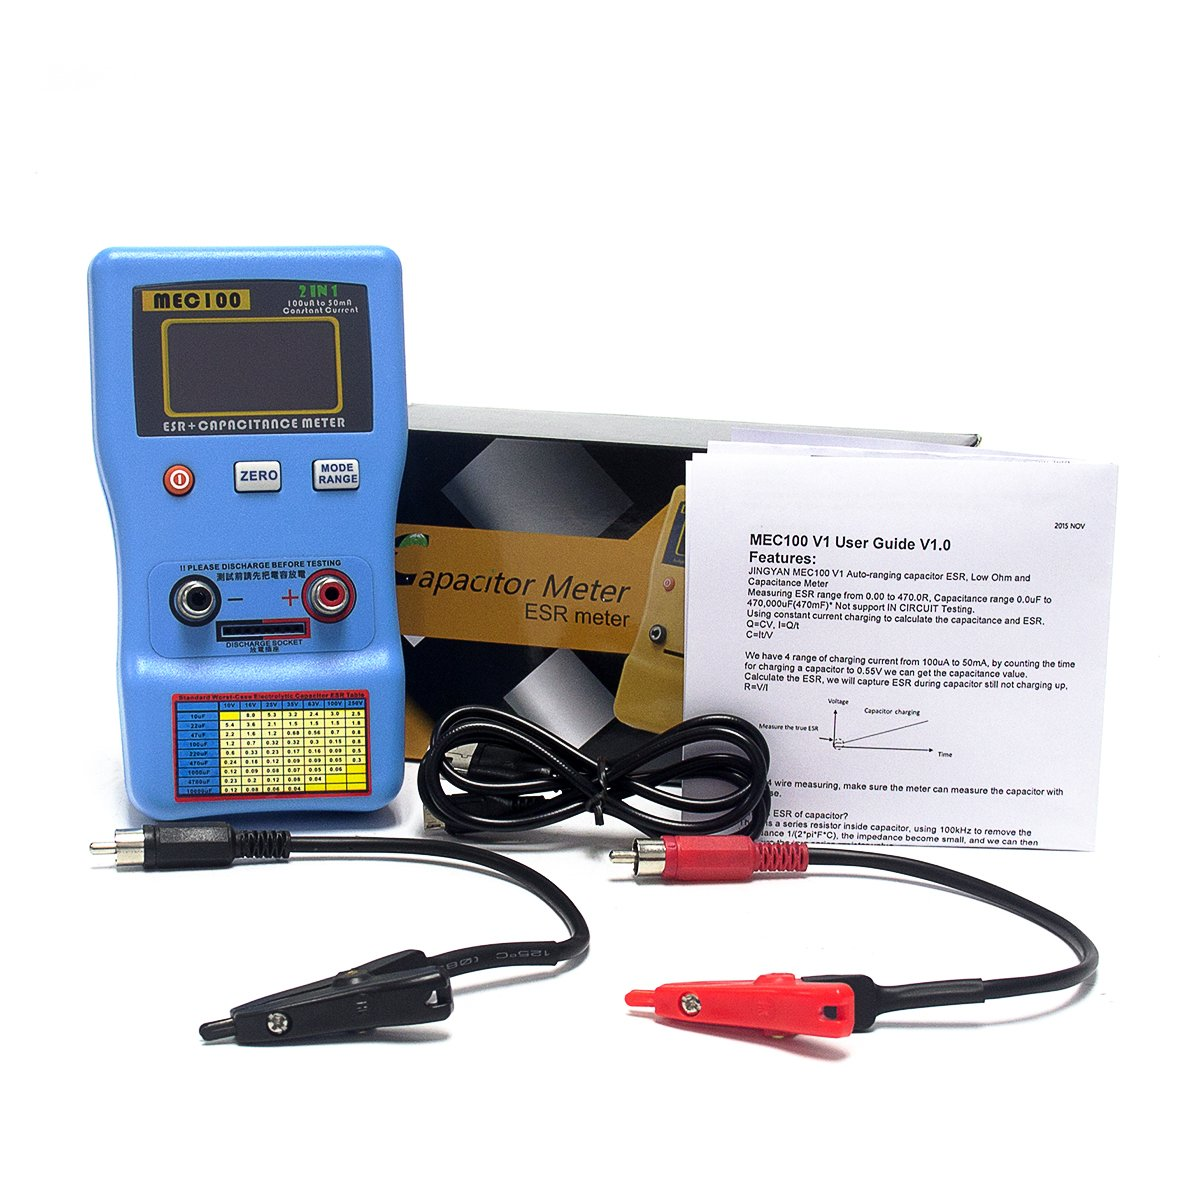 Signstek 2 in 1 Digital Auto-ranging ESR + Capacitance Meter 0-470Ω ERS 0μF-470mF Rechargeable Capacitance Tester and Internal Resistance Tester with SMD Test Clips and USB Cable by Signstek (Image #9)